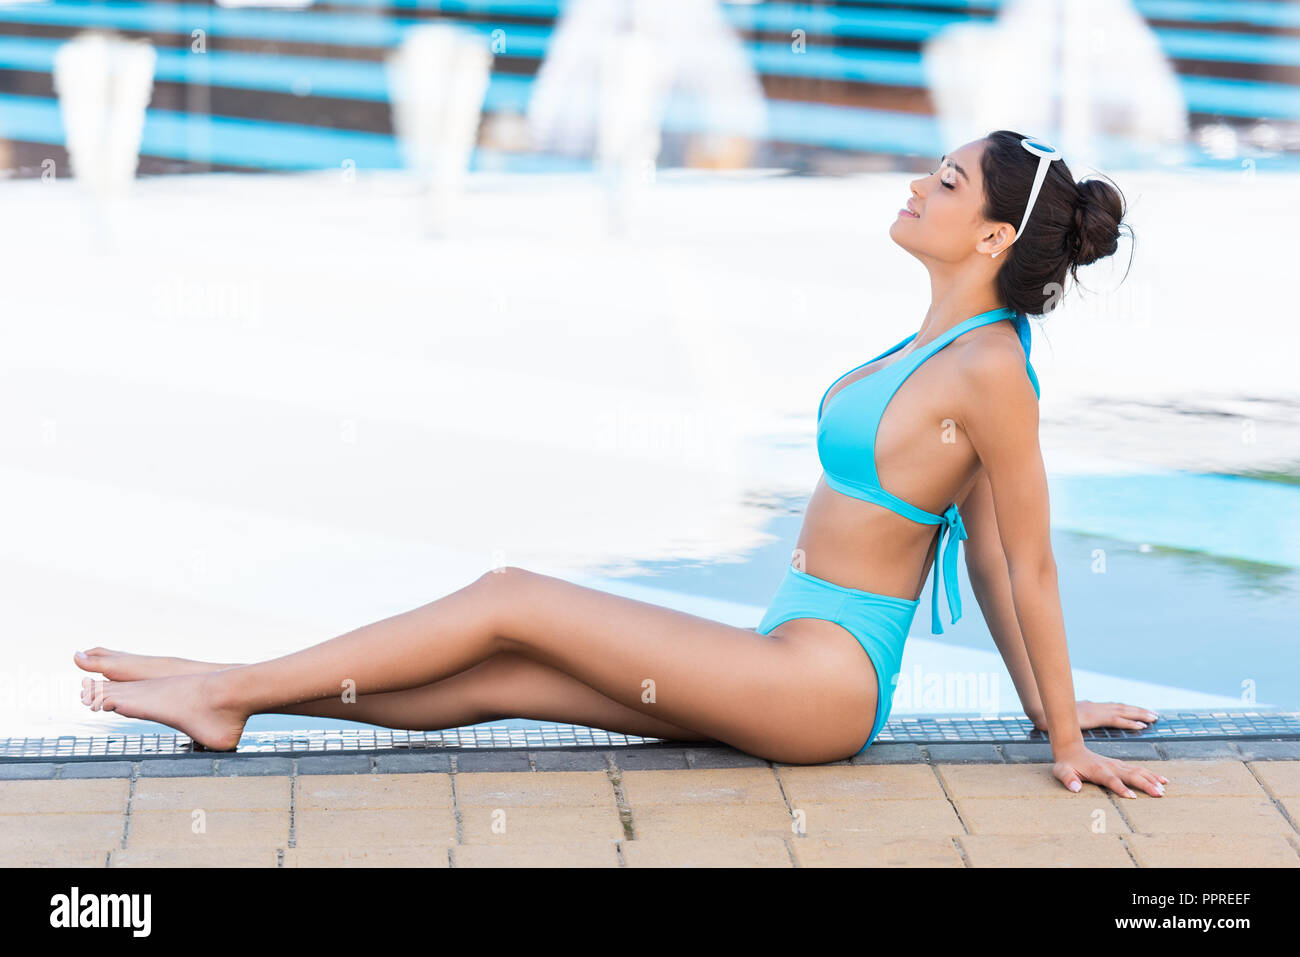 tanned girl in blue bikini relaxing and sunbathing at poolside - Stock Image